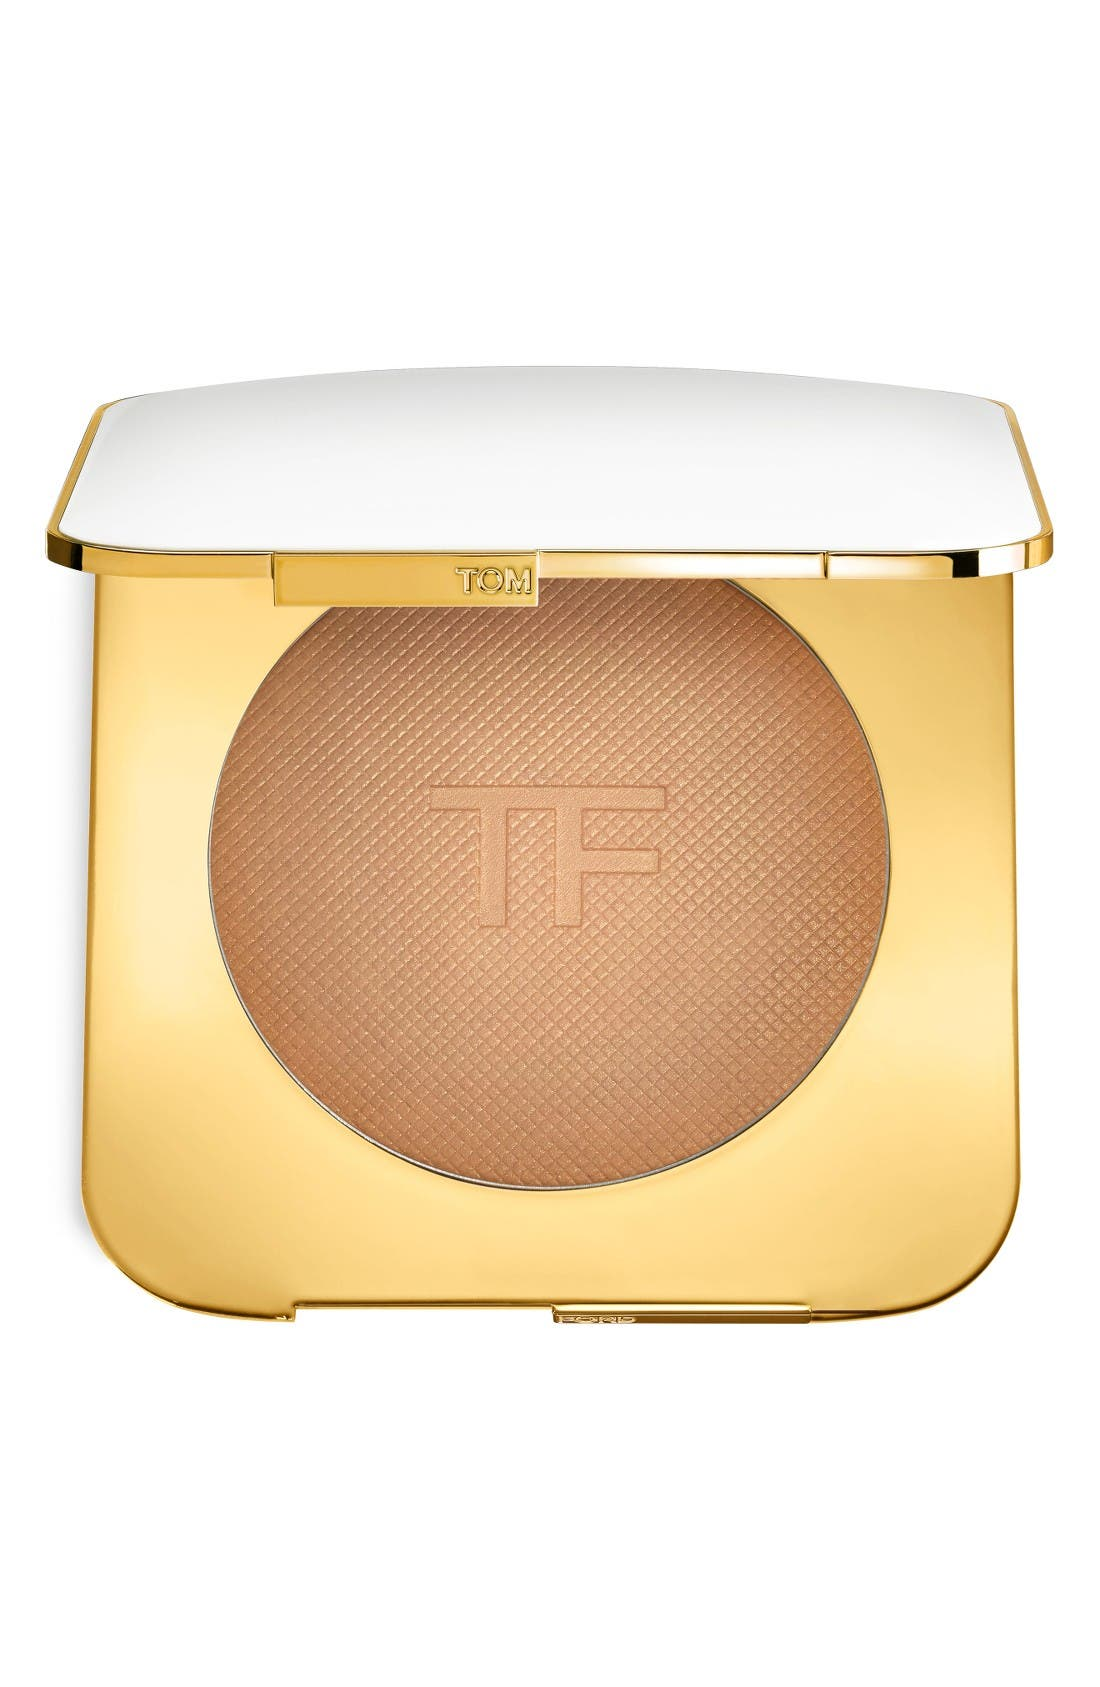 Main Image - Tom Ford The Ultimate Bronzer